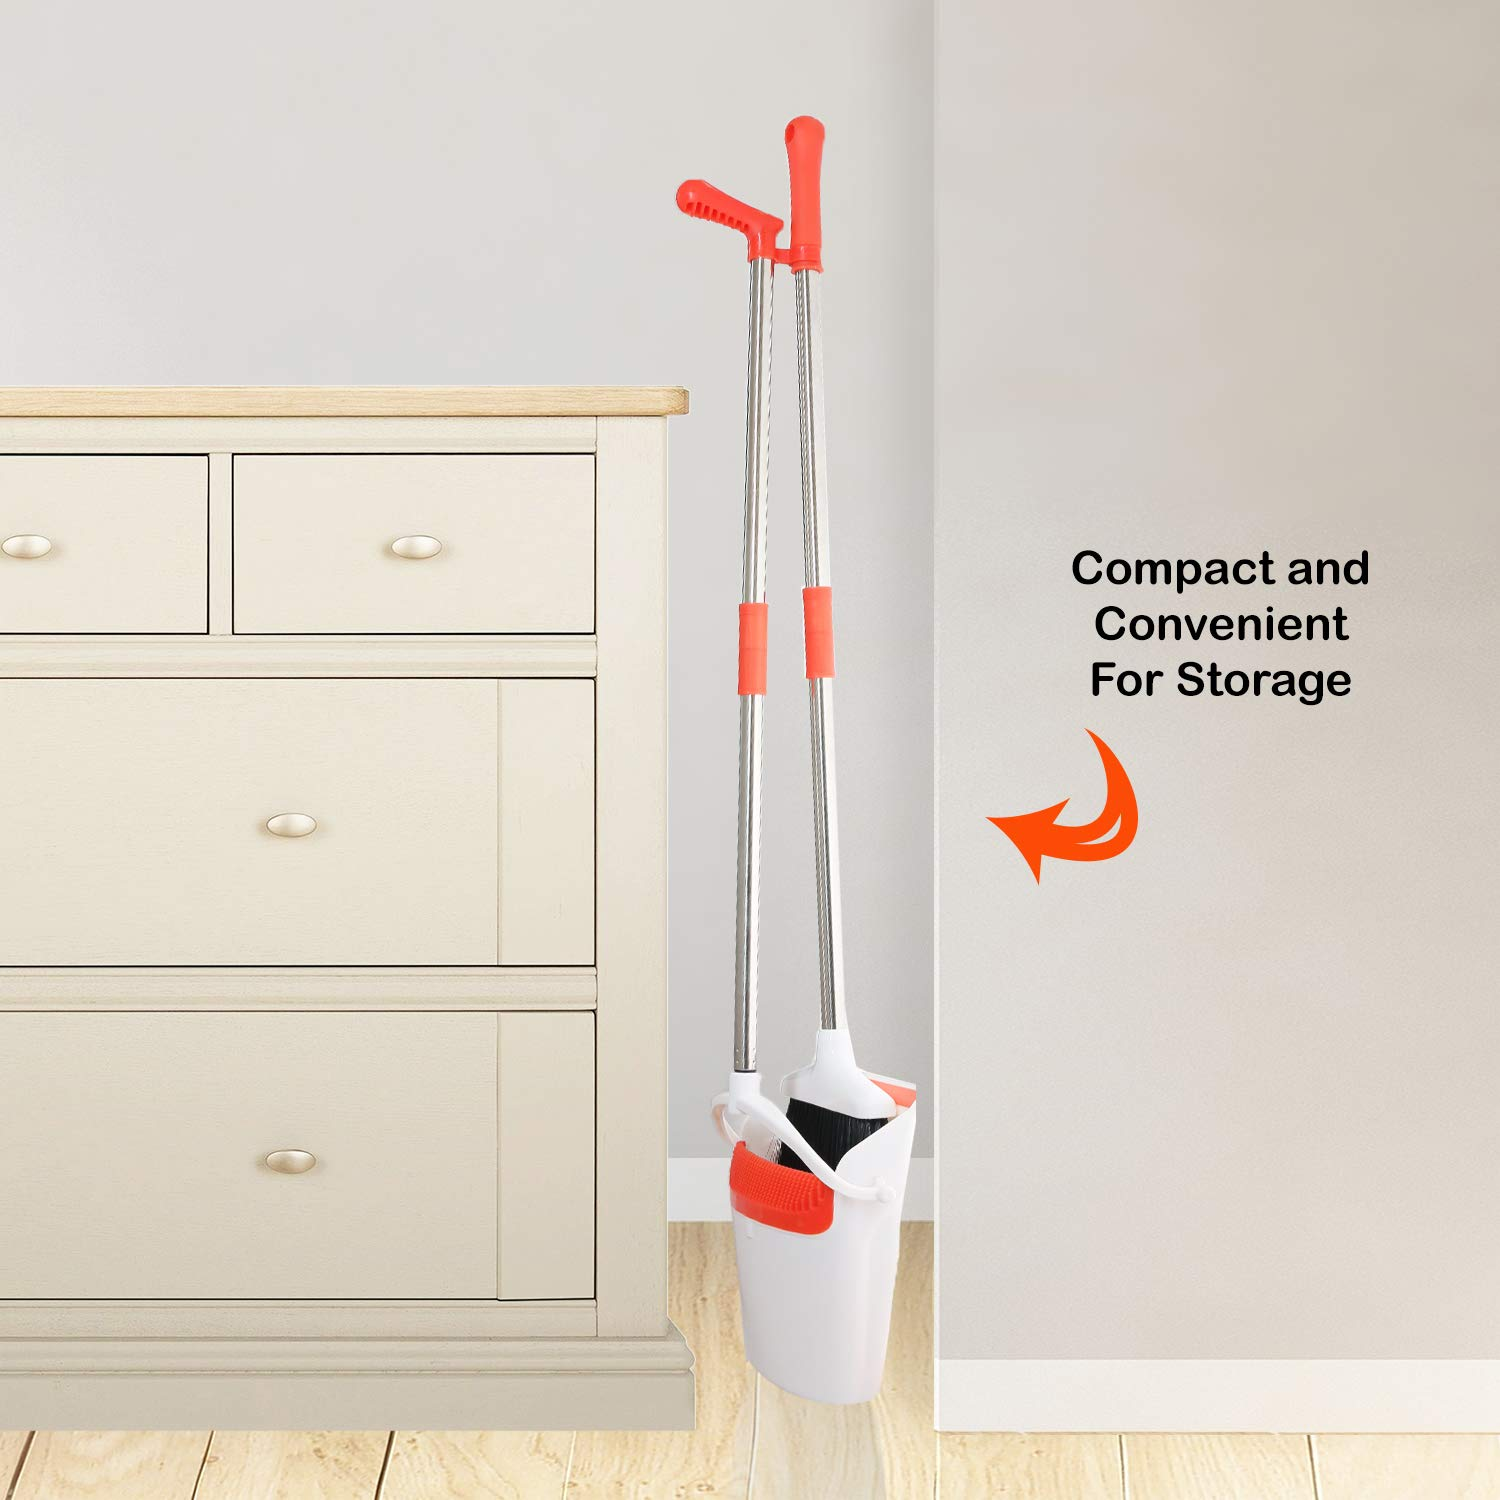 Broom And Dustpan Set - Strongest 30% Heavier Duty - Upright Standing Dust Pan With Extendable Broomstick For Easy Sweeping Easy Assembly Great Use For Home, Office, Kitchen, Lobby Etc. By Kray